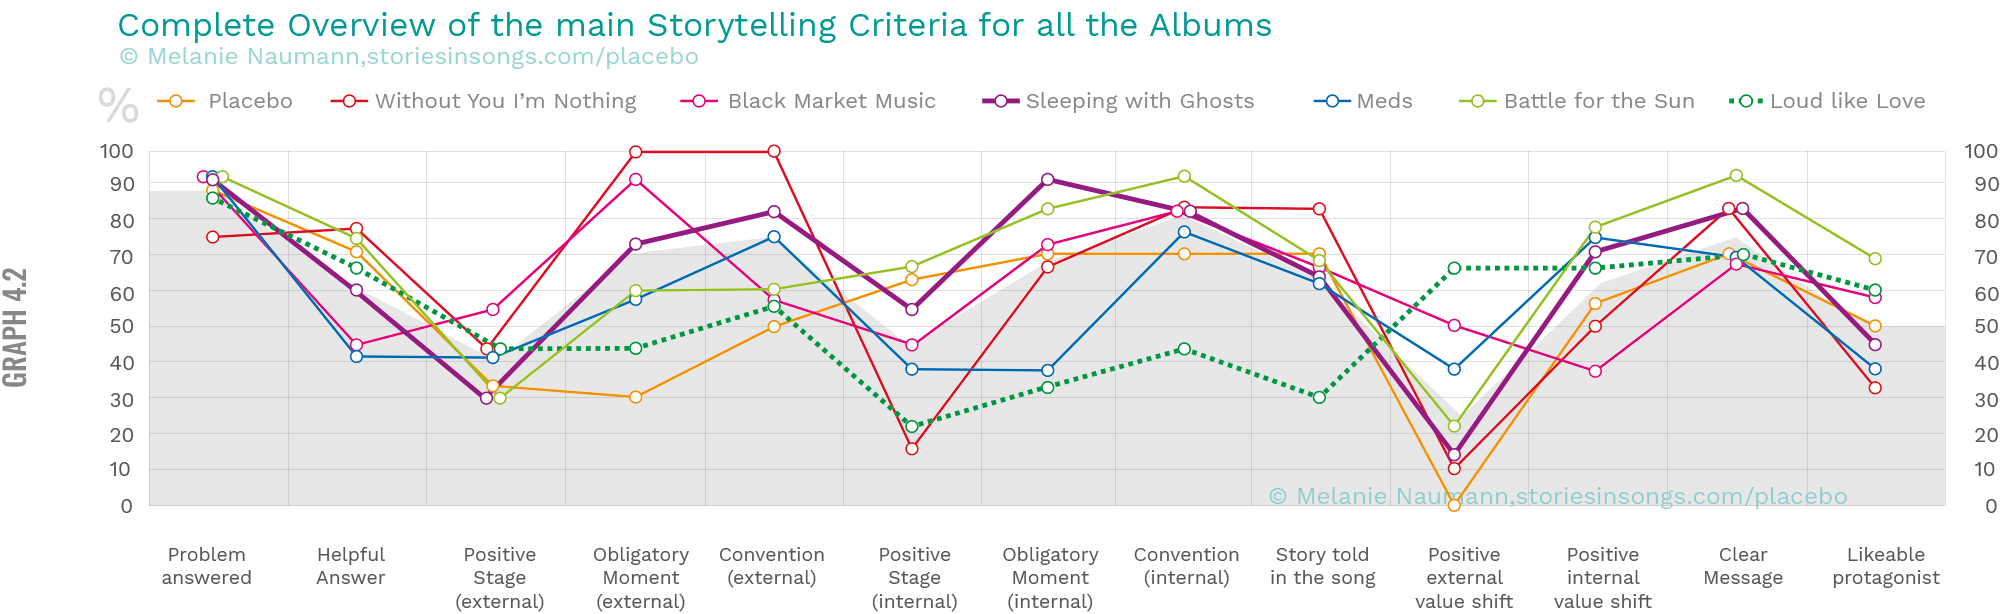 Placebo Infographic final albums average for each criterion